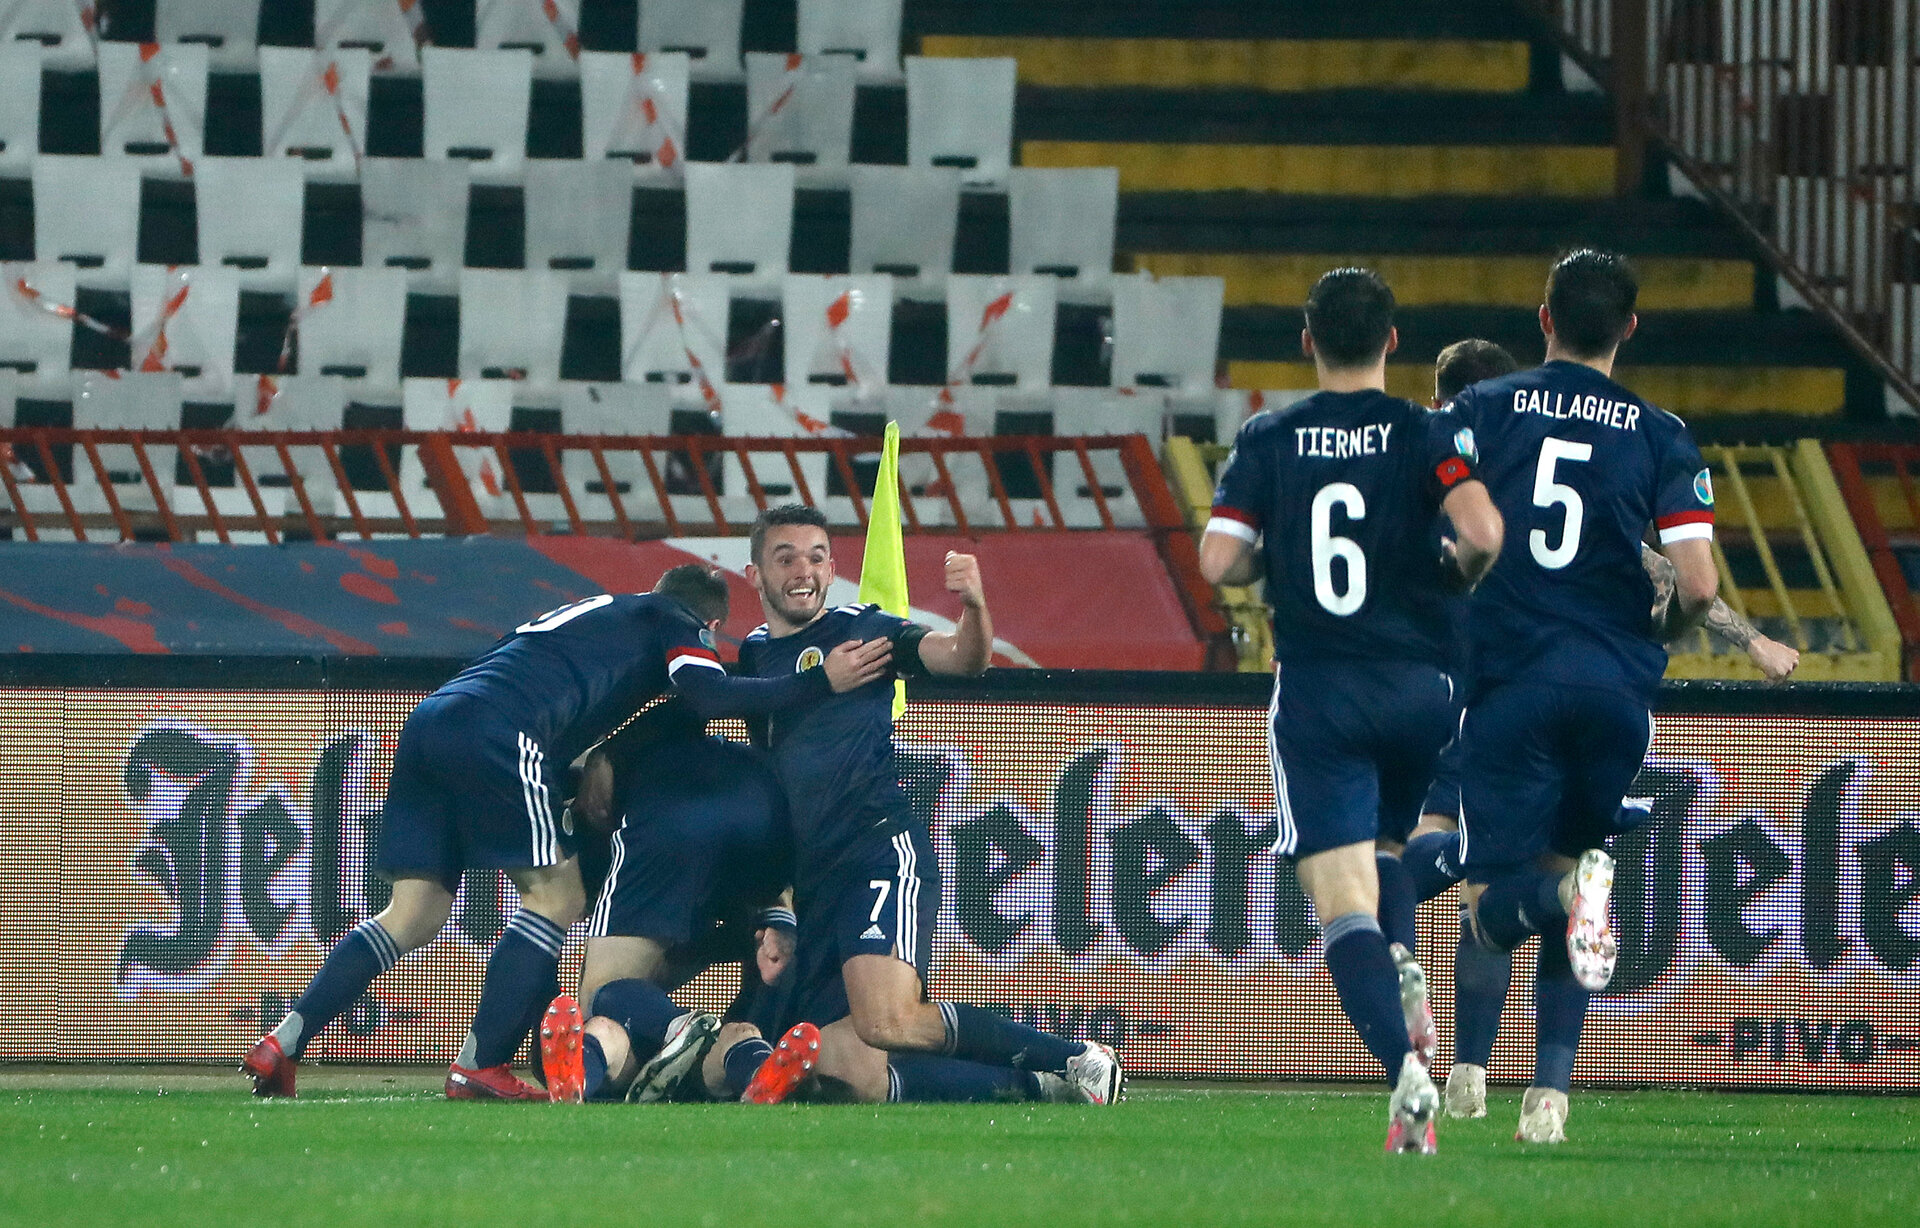 BELGRADE, SERBIA - NOVEMBER 12: Ryan Christie of Scotland  celebrates after scoring his team's first goal with his team during the UEFA EURO 2020 Play-Off Final between Serbia and Scotland at Rajko Mitic Stadium on November 12, 2020 in Belgrade, Serbia. Football Stadiums around Europe remain empty due to the Coronavirus Pandemic as Government social distancing laws prohibit fans inside venues resulting in fixtures being played behind closed doors. (Photo by Srdjan Stevanovic/Getty Images)